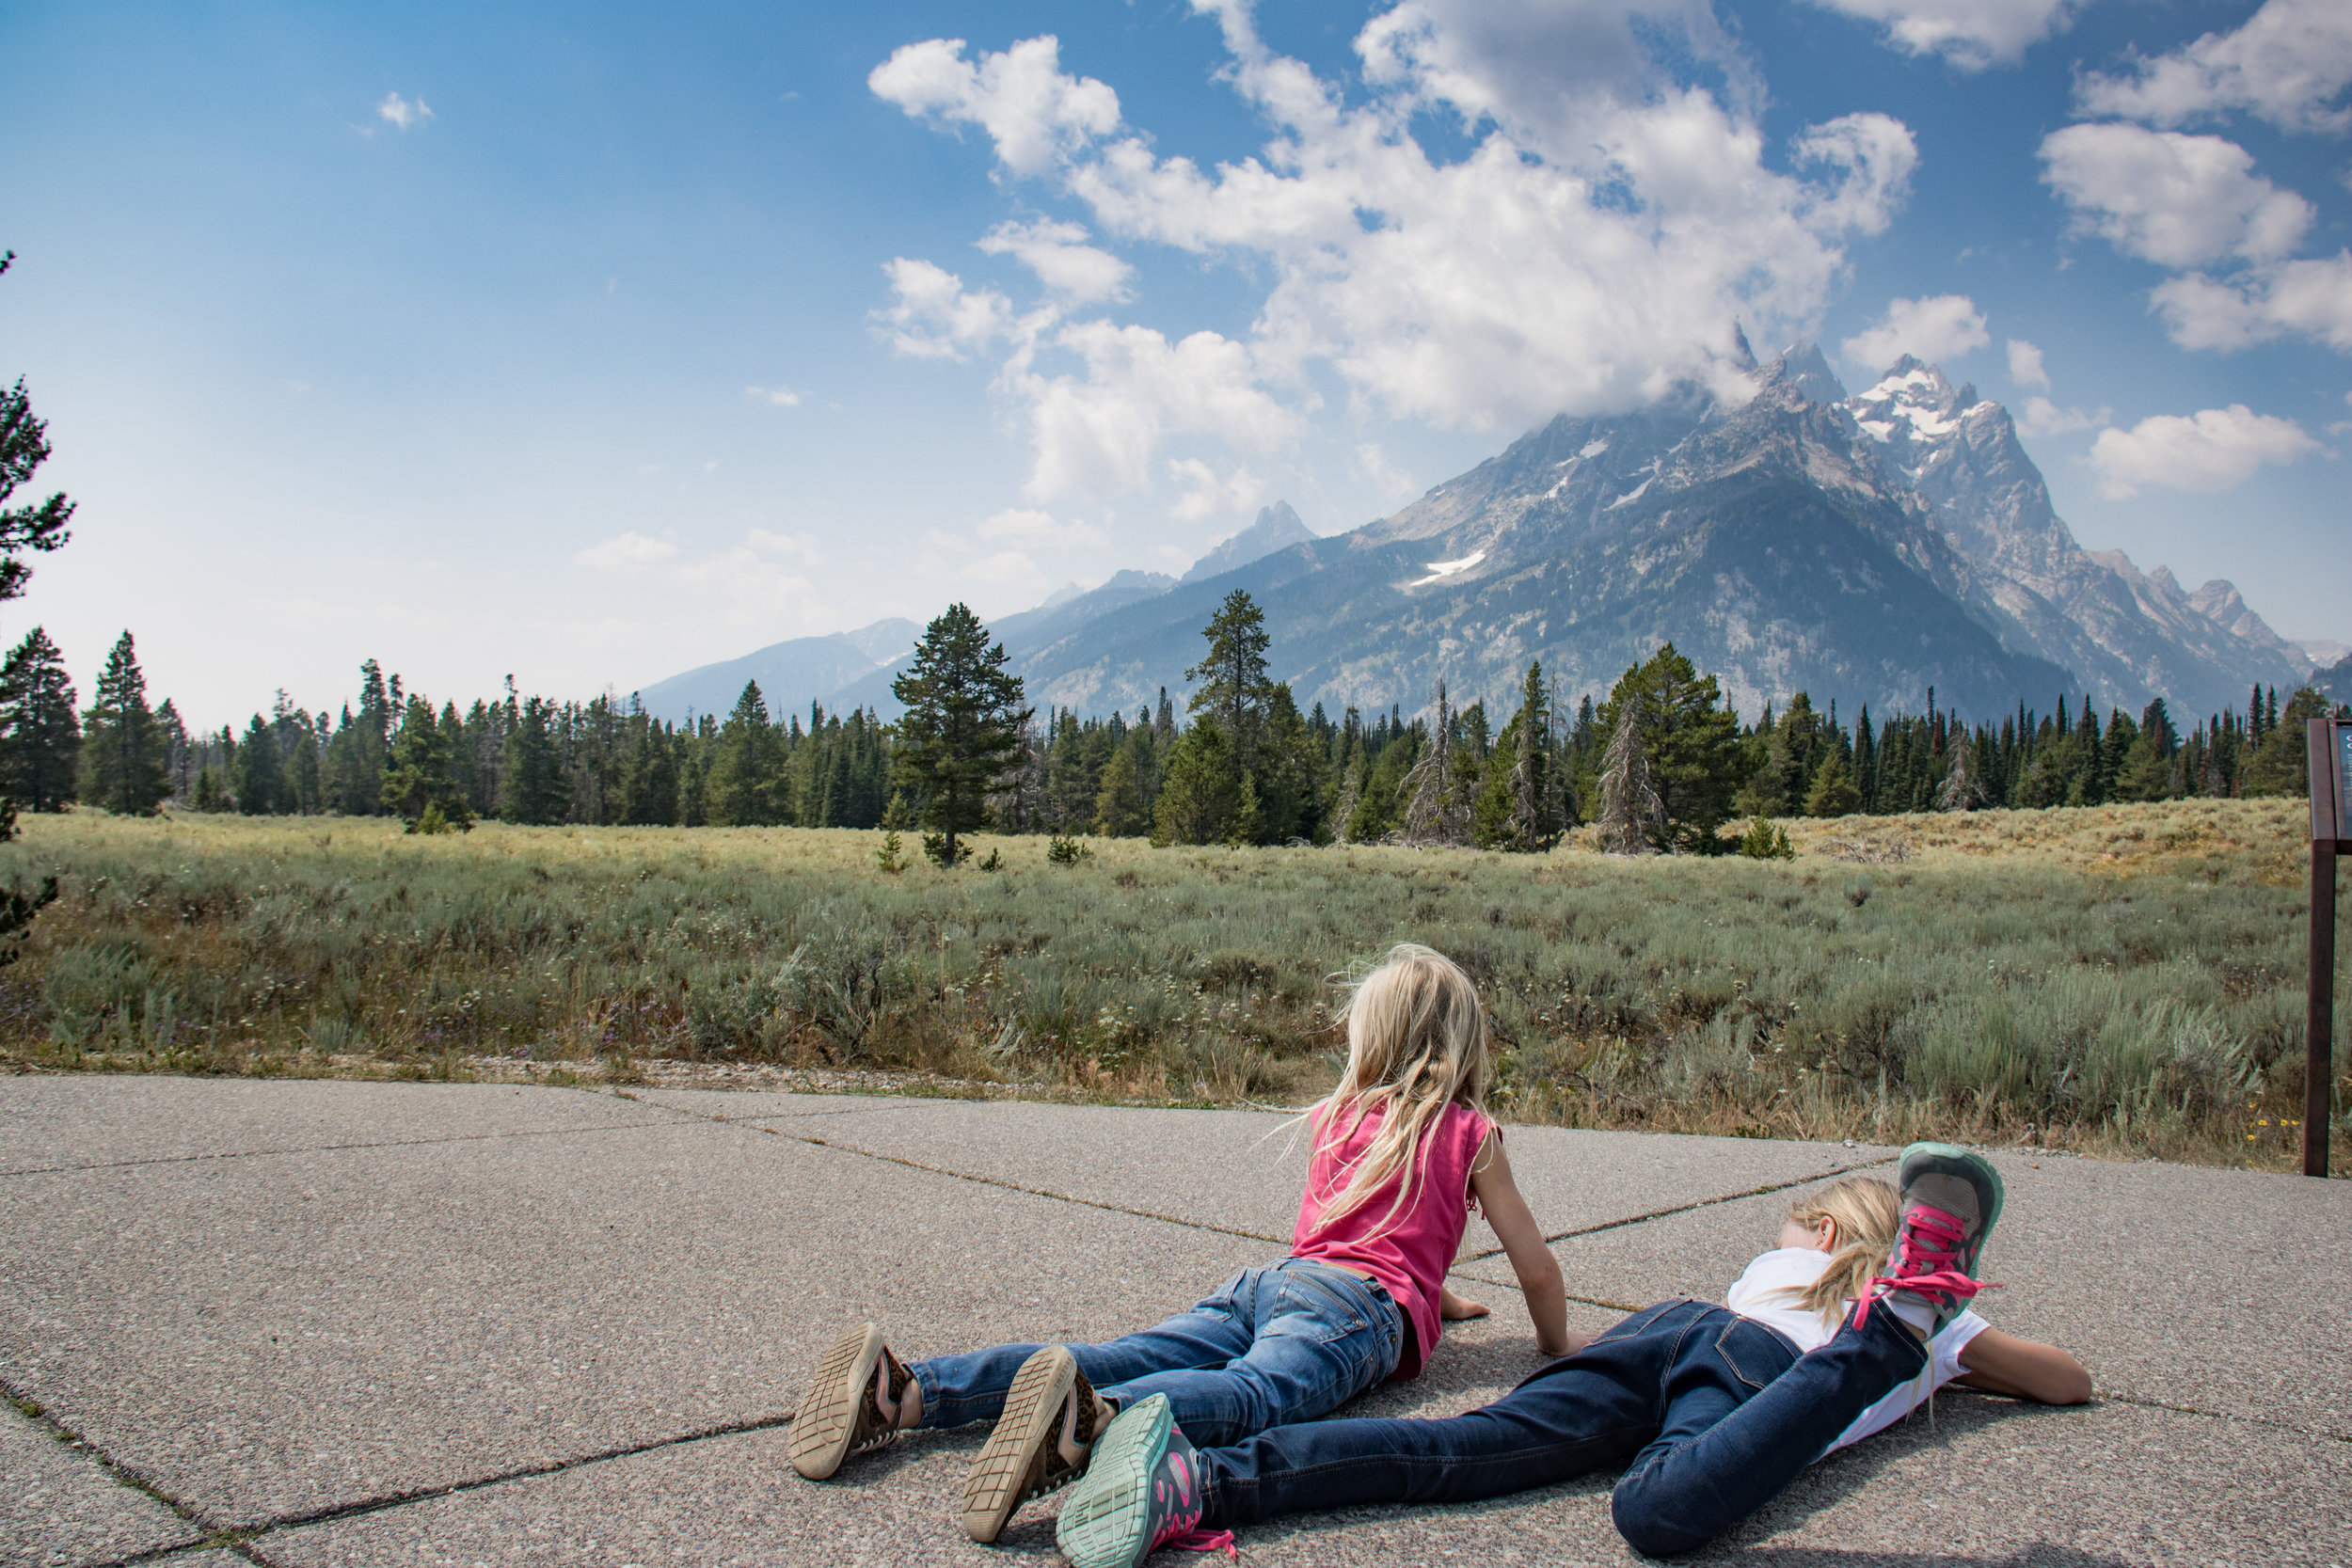 In front of the Tetons